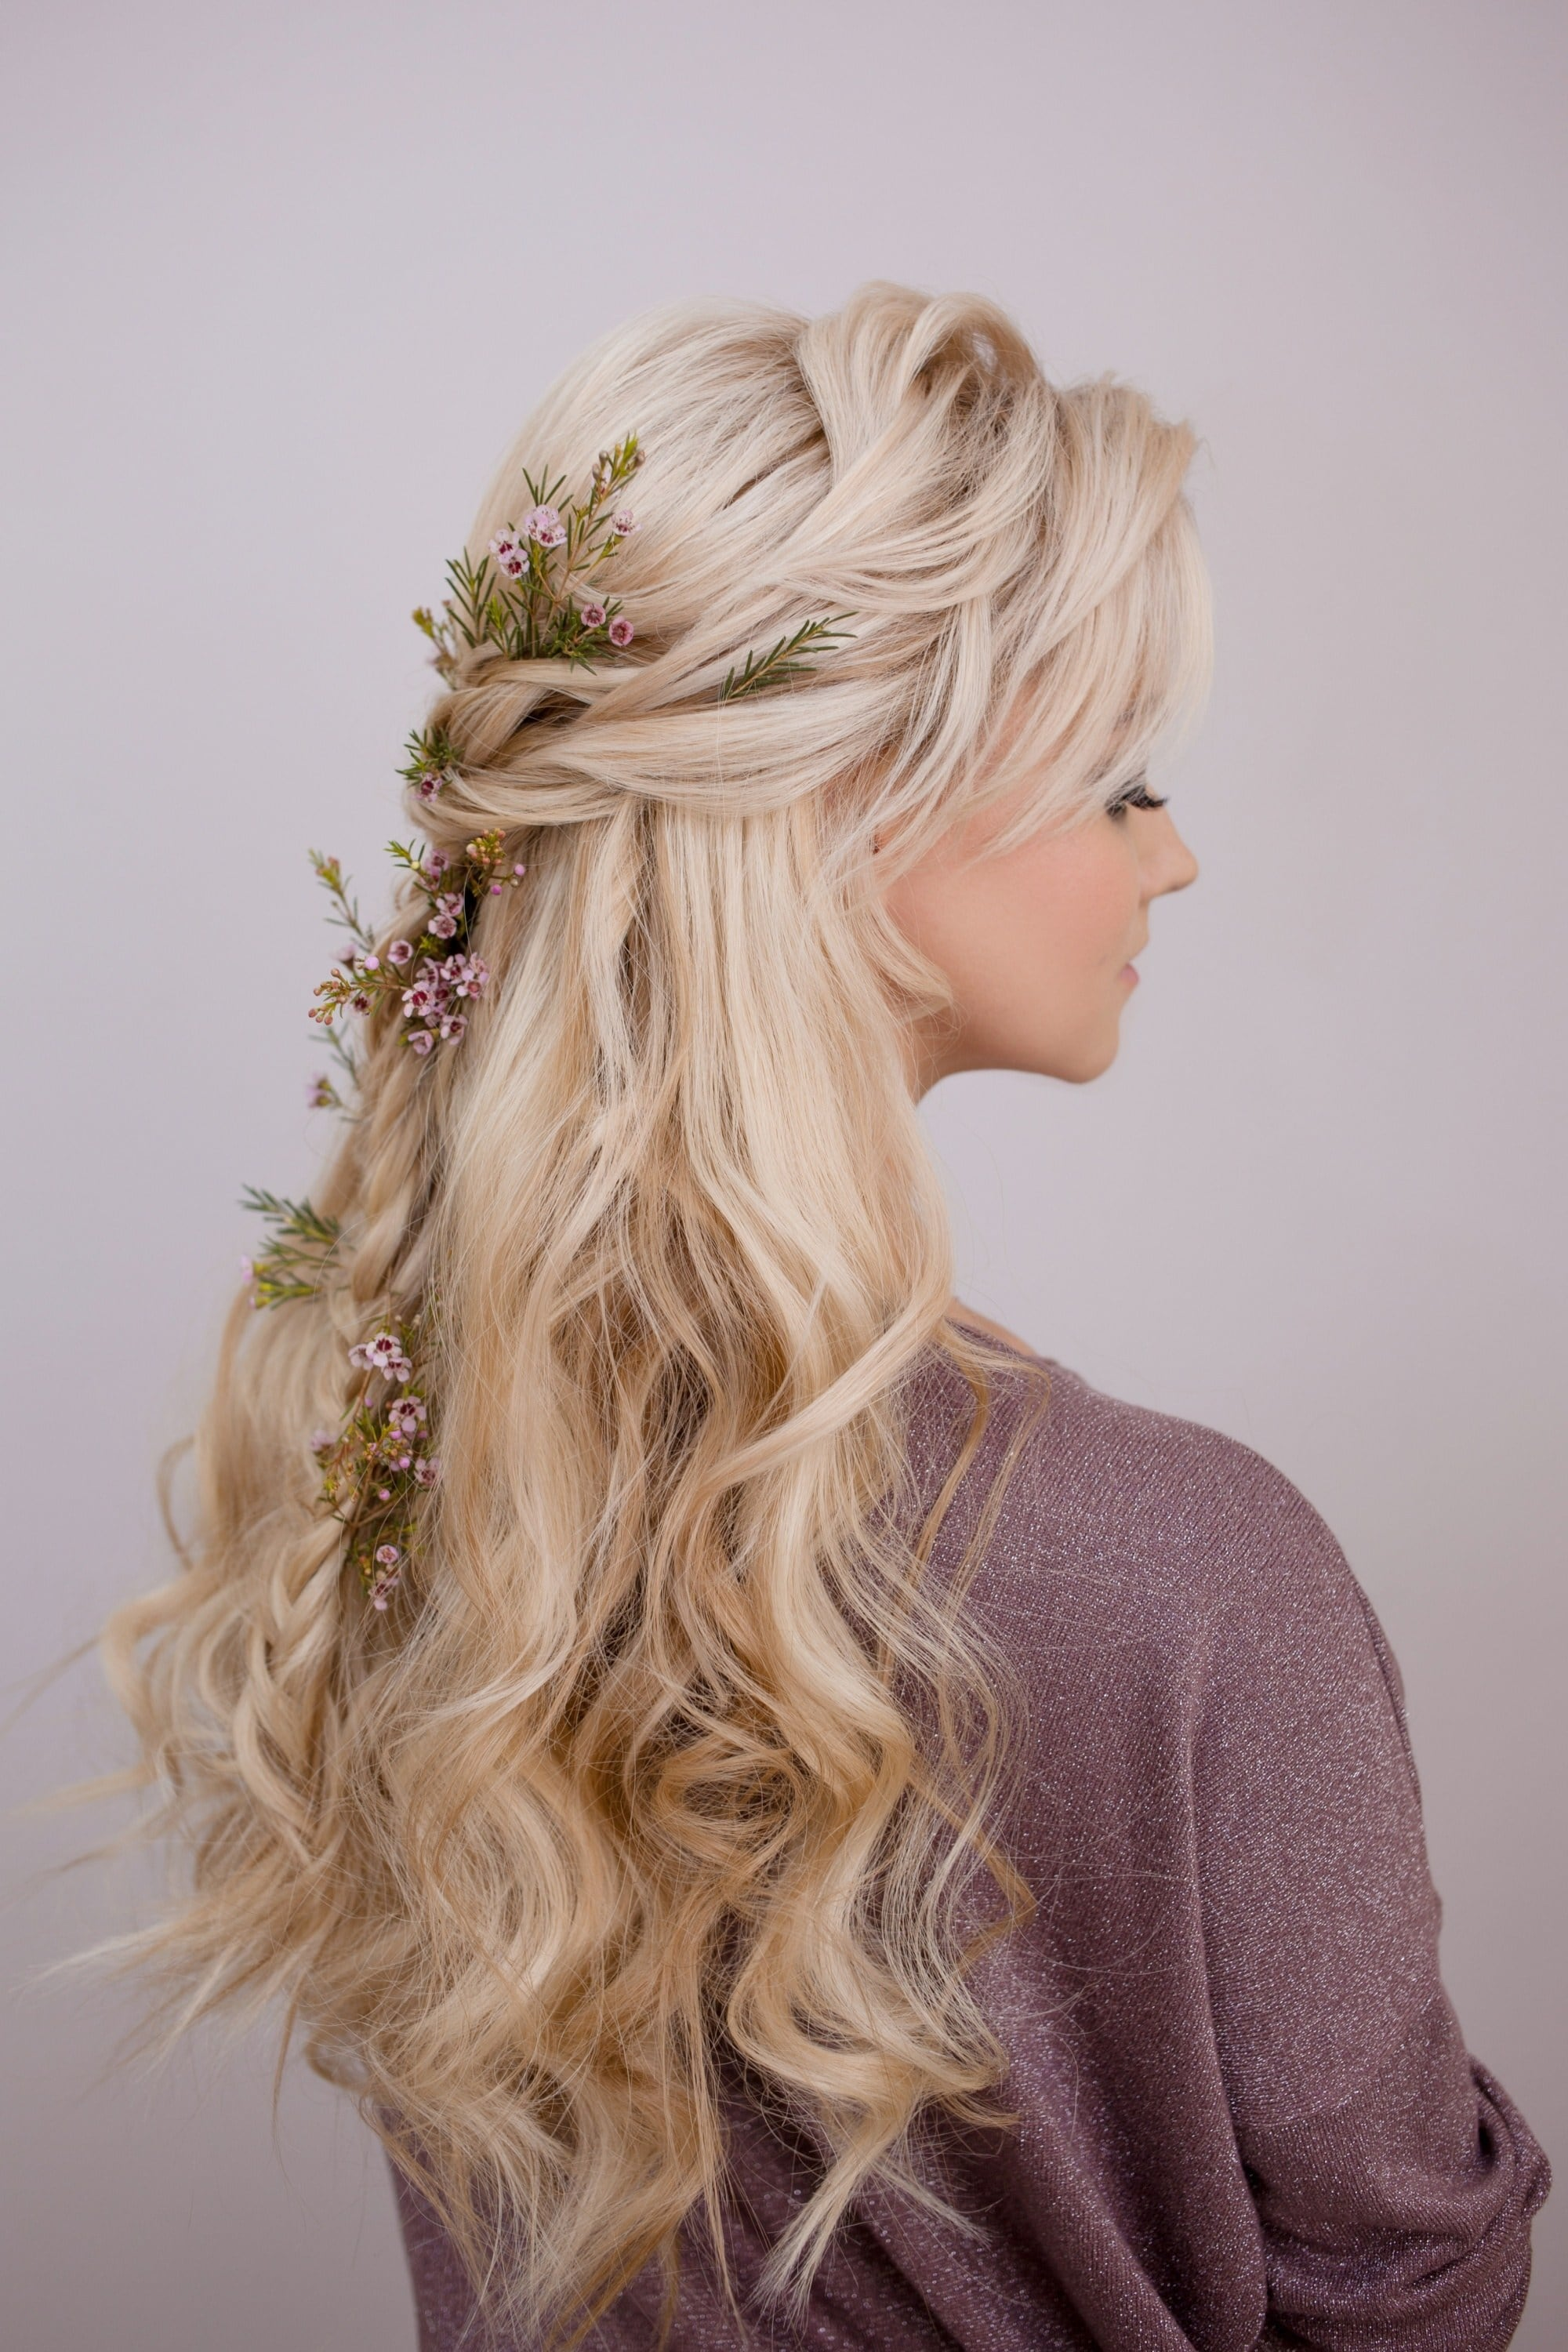 Woman with long blonde hair with flower hair design